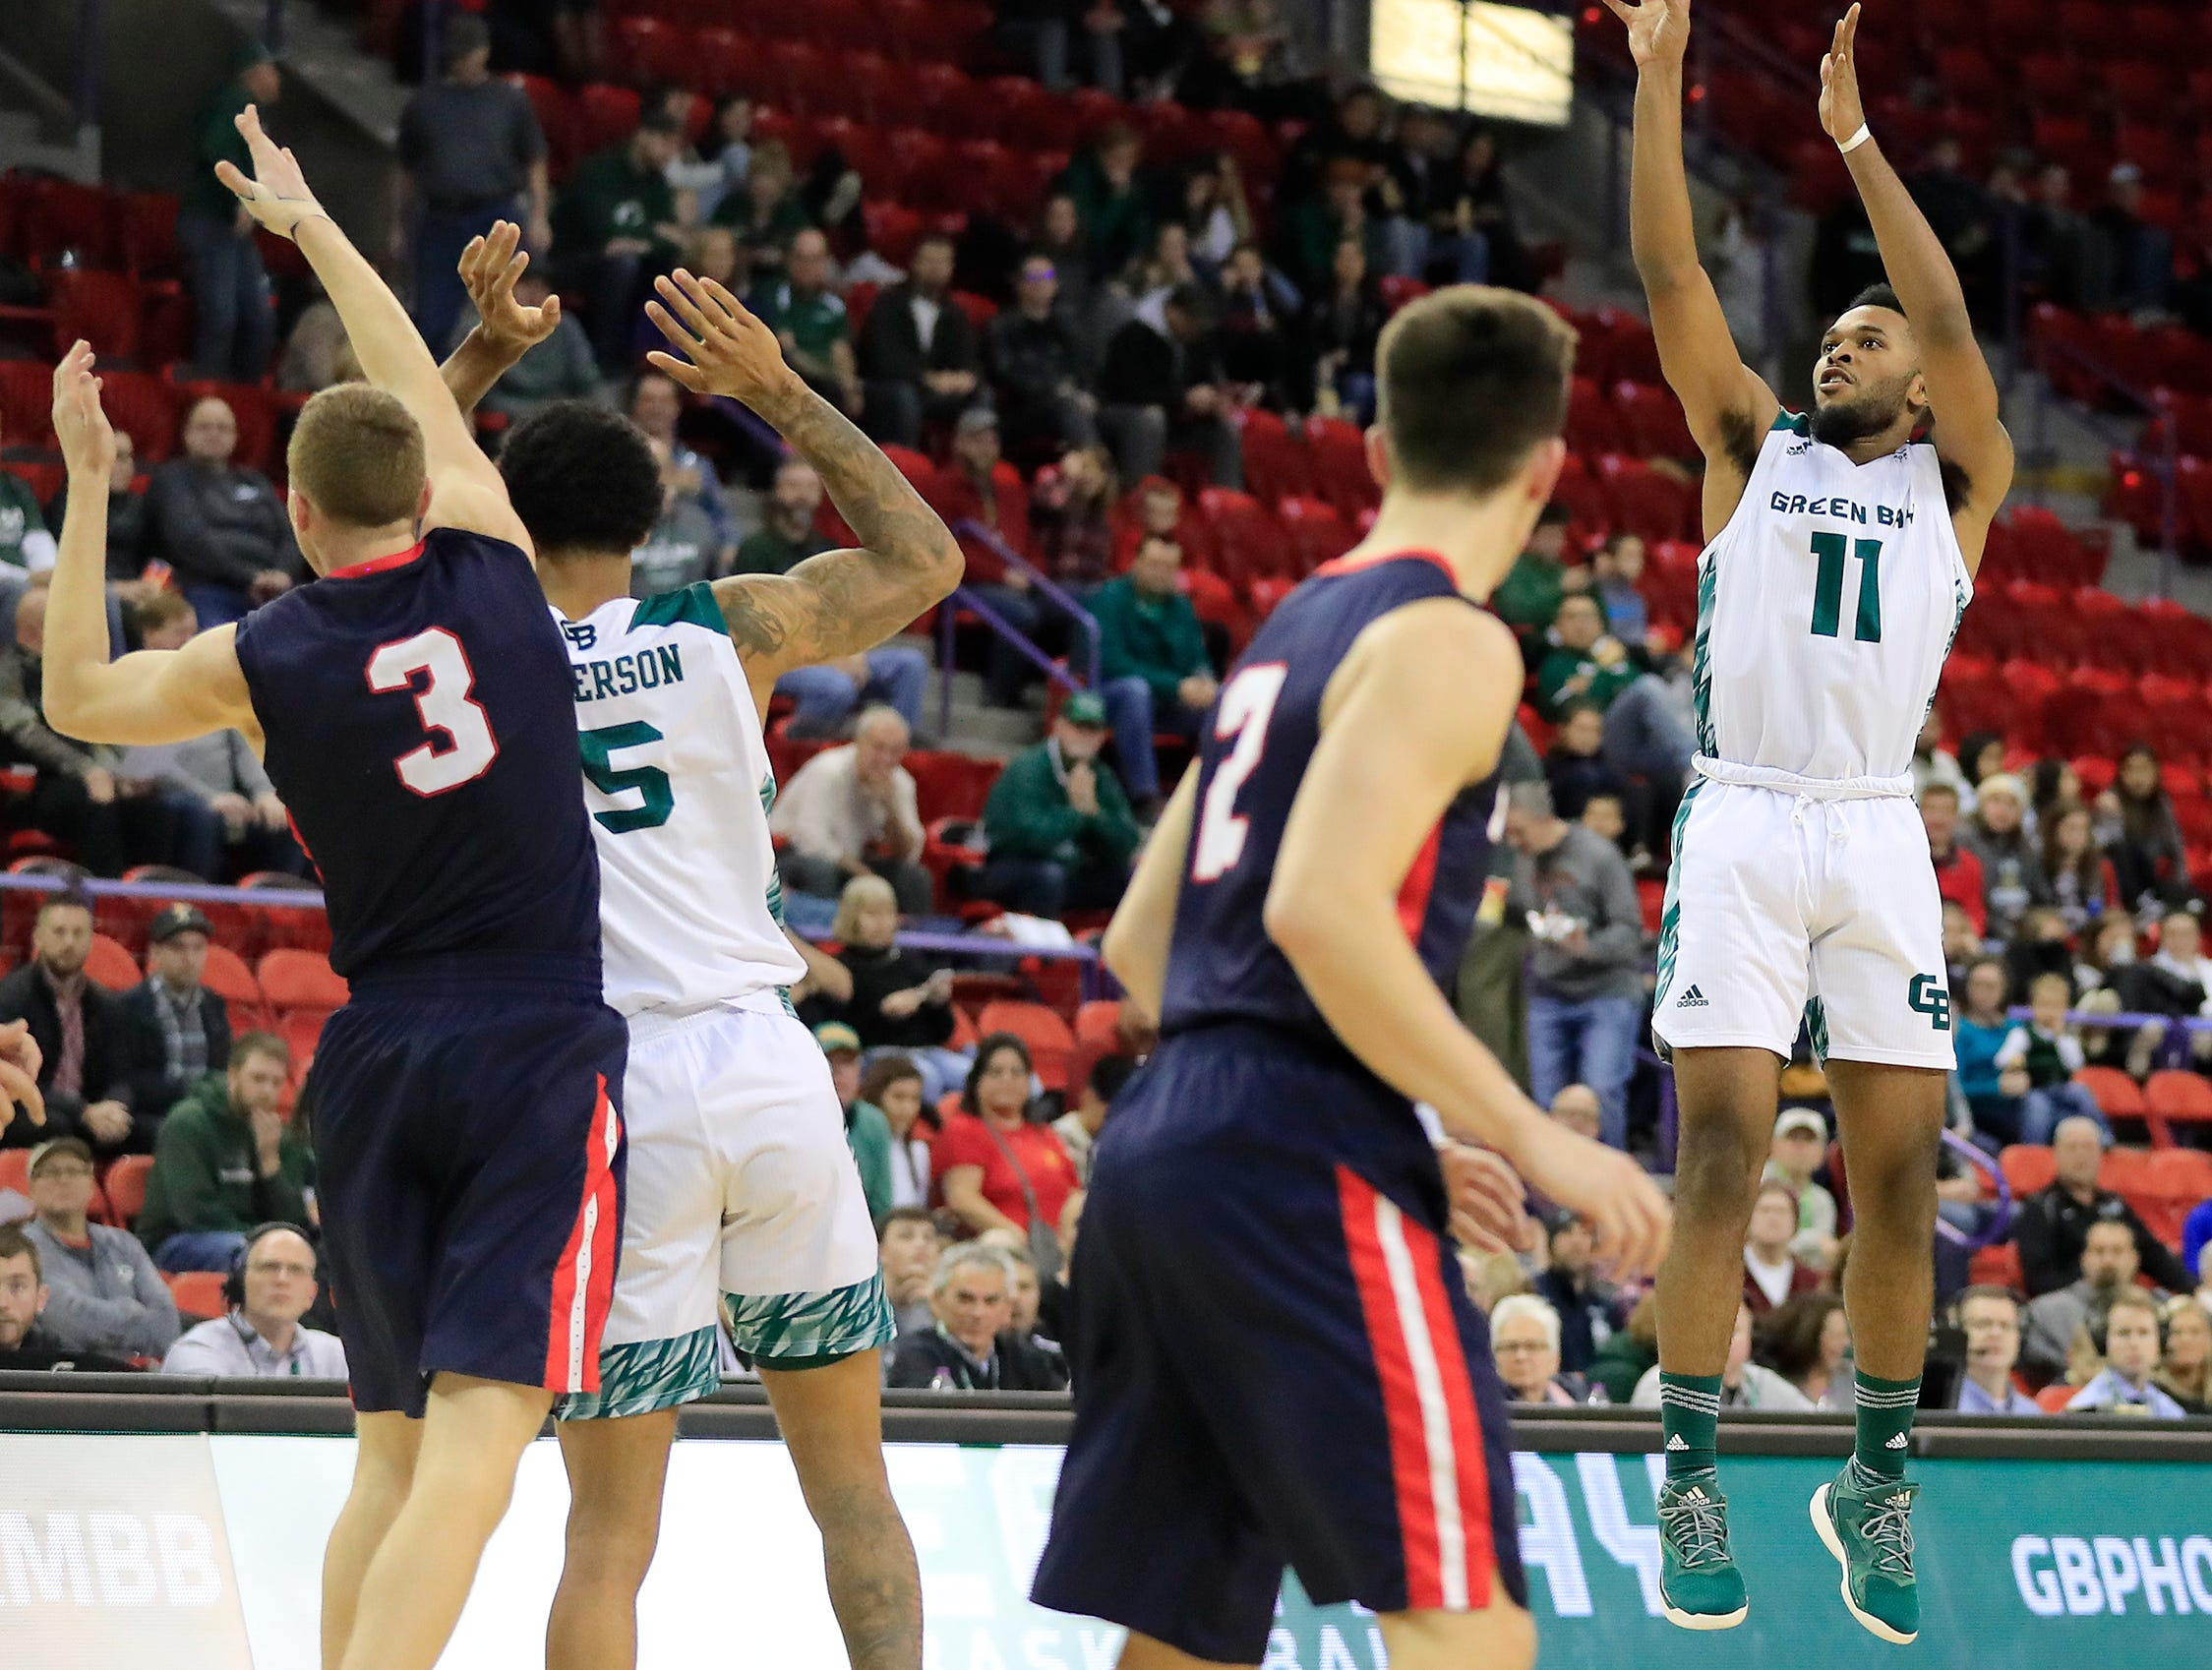 Green Bay Phoenix guard JayQuan McCloud (11) shoots against the Belmont Bruins in a NCAA basketball game at the Resch Center on Saturday, December 1, 2018 in Ashwaubenon, Wis.